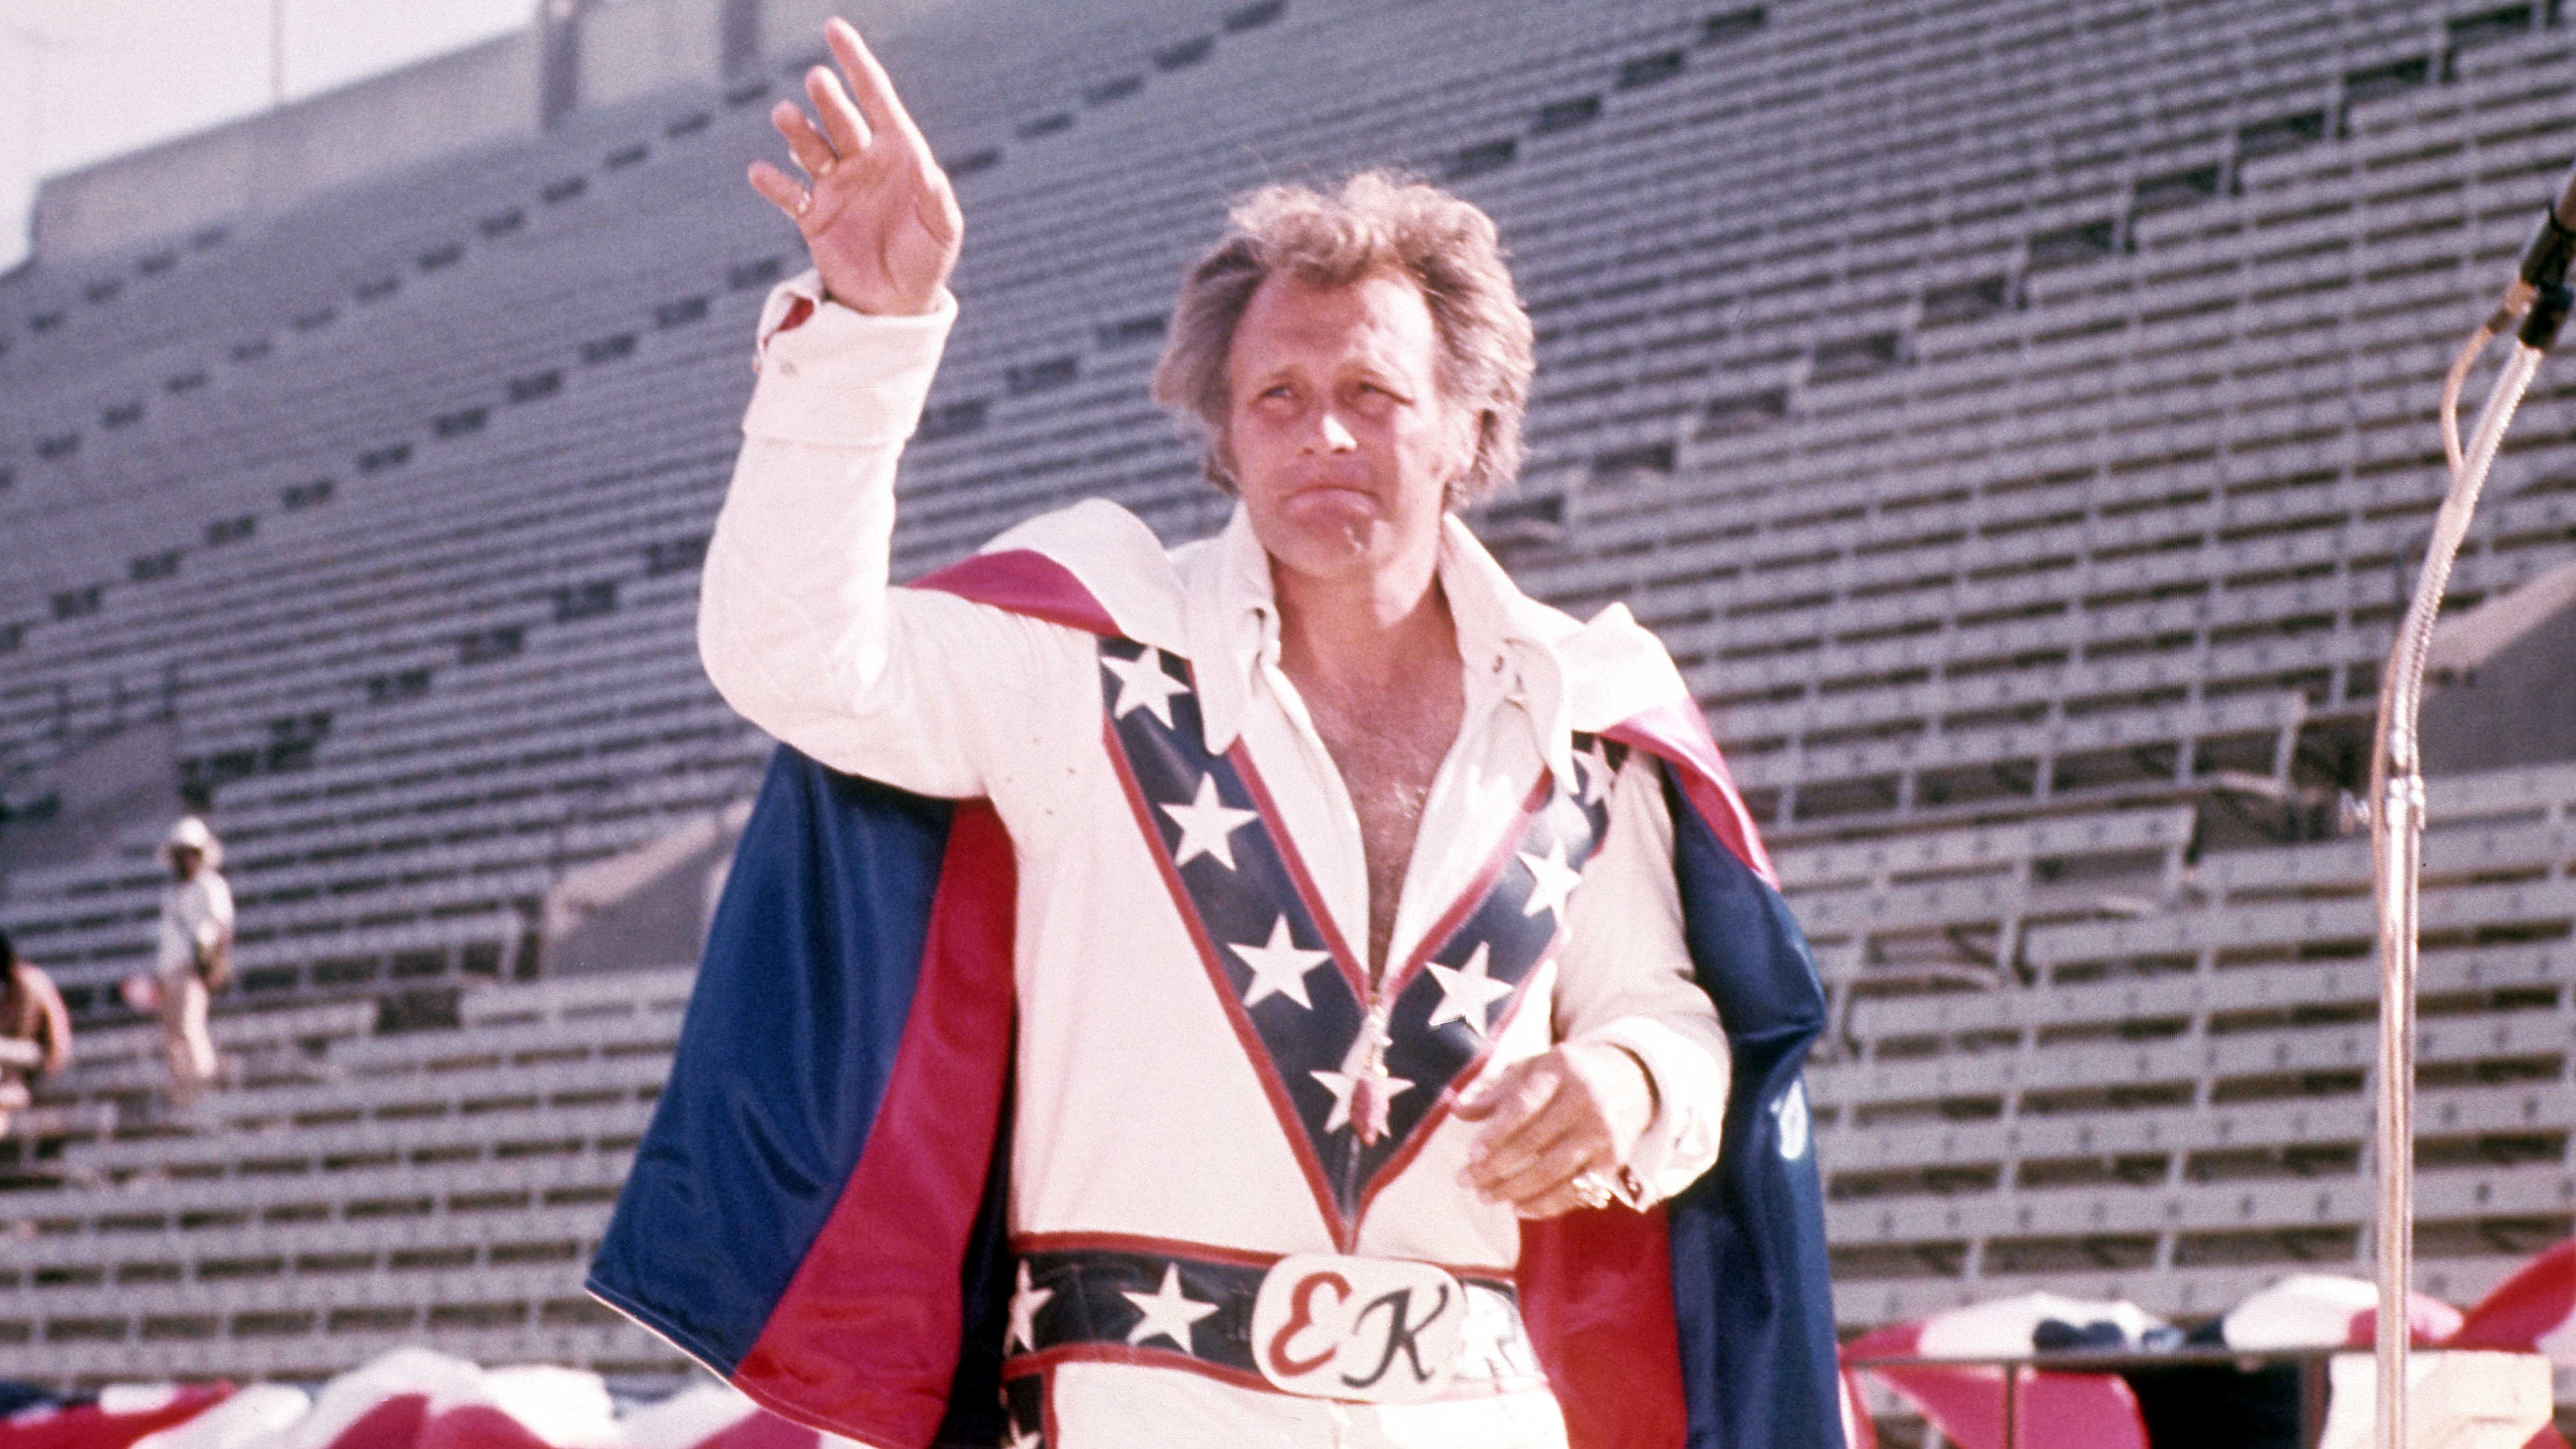 Evel Knievel's Last Jump: What Made Him Finally Quit?